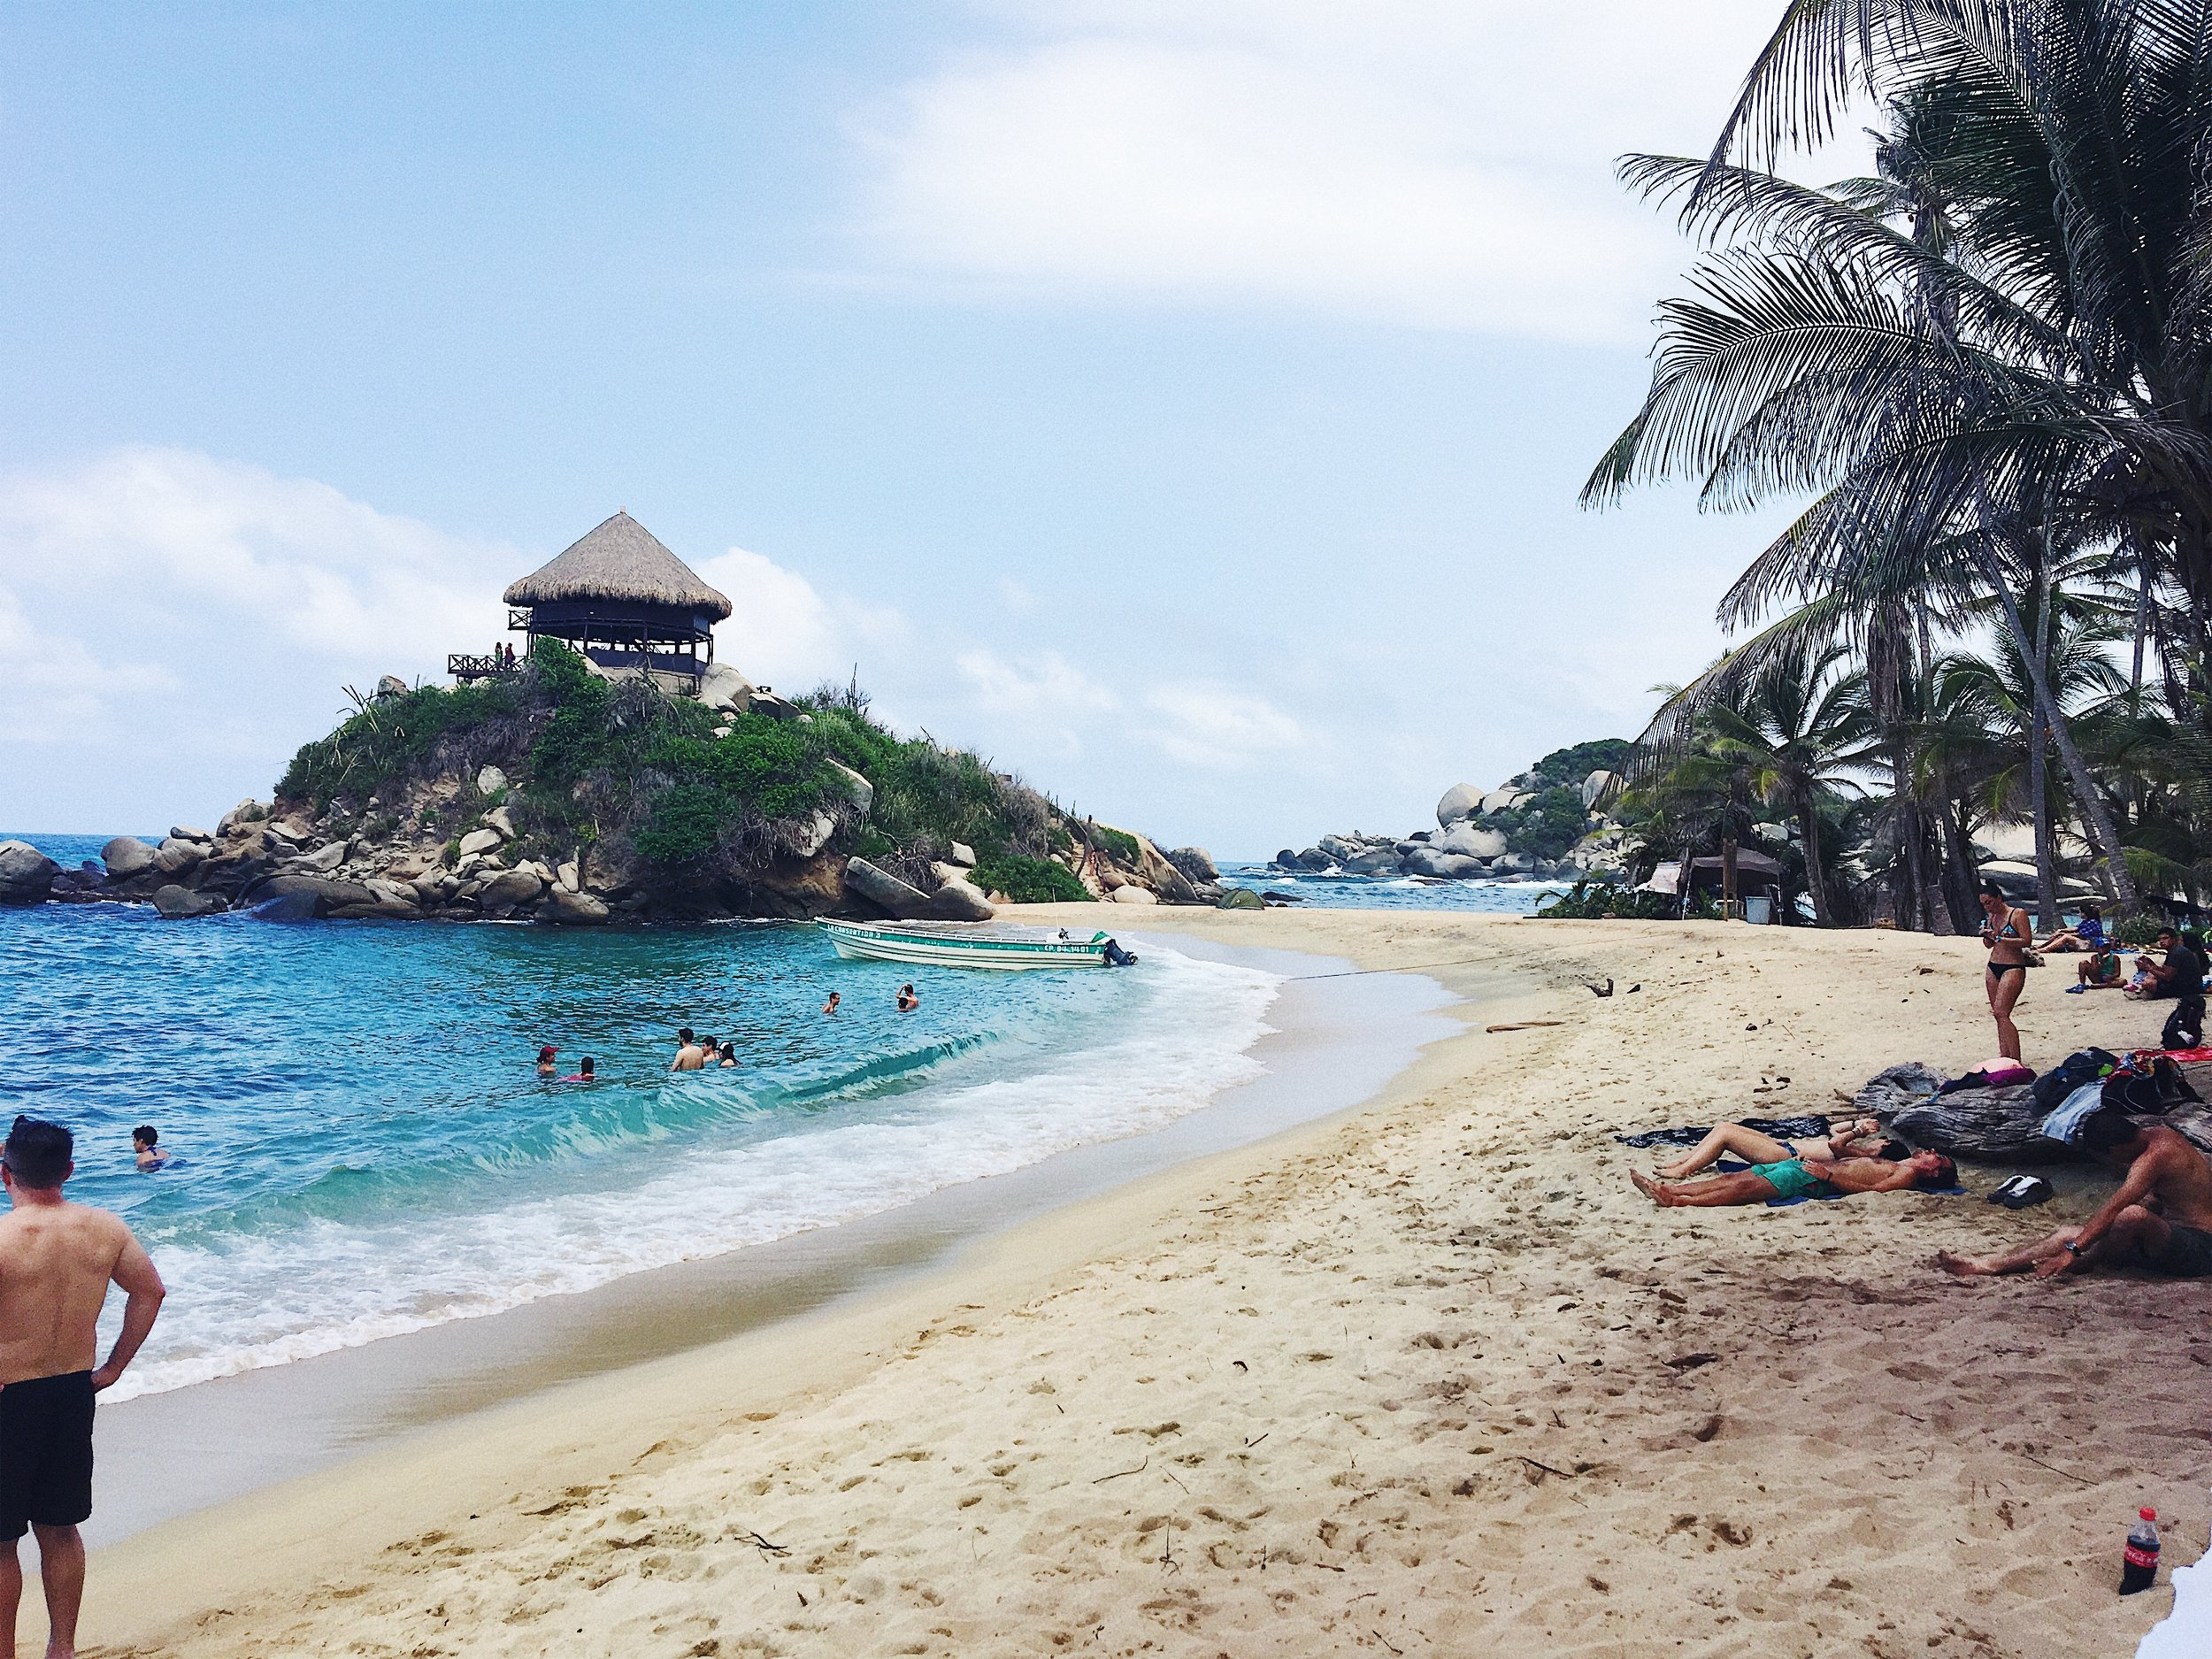 The beach of El Cabo San Juan in Tayrona National Park, Colombia.